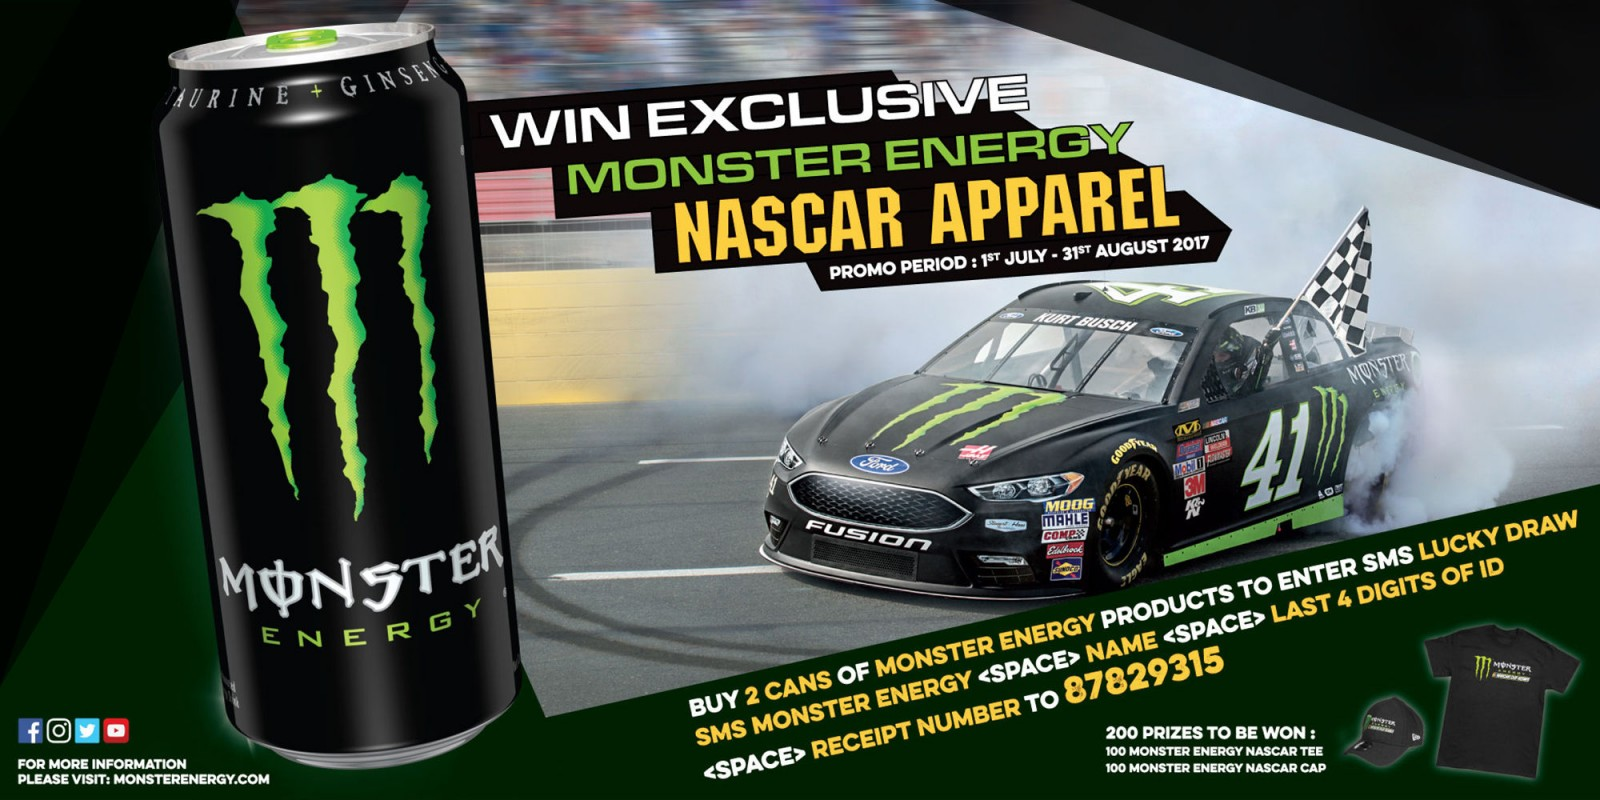 Win Exclusive Monster Energy NASCAR Apparels